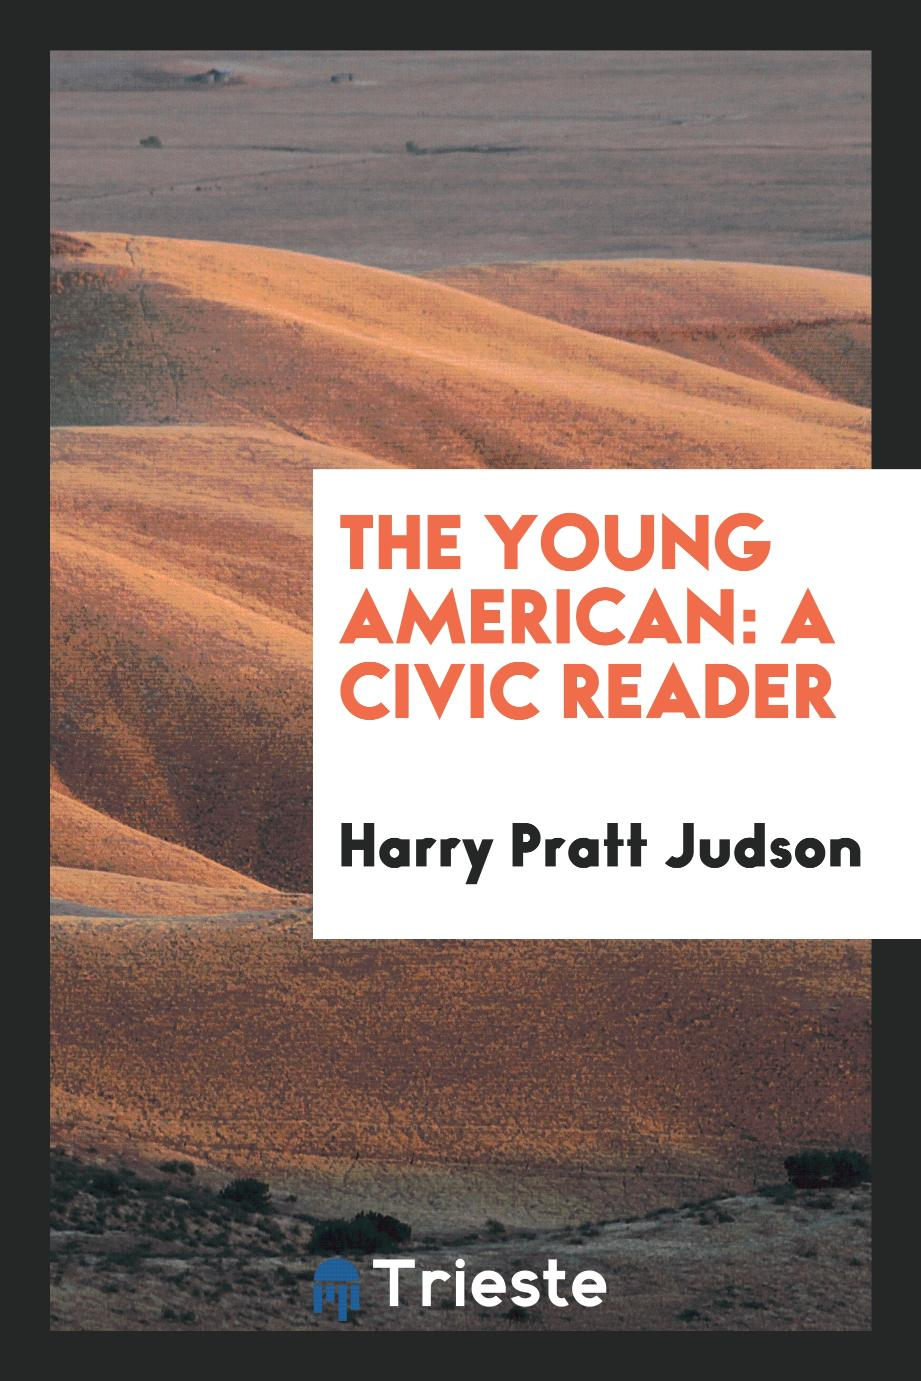 The young American: a civic reader